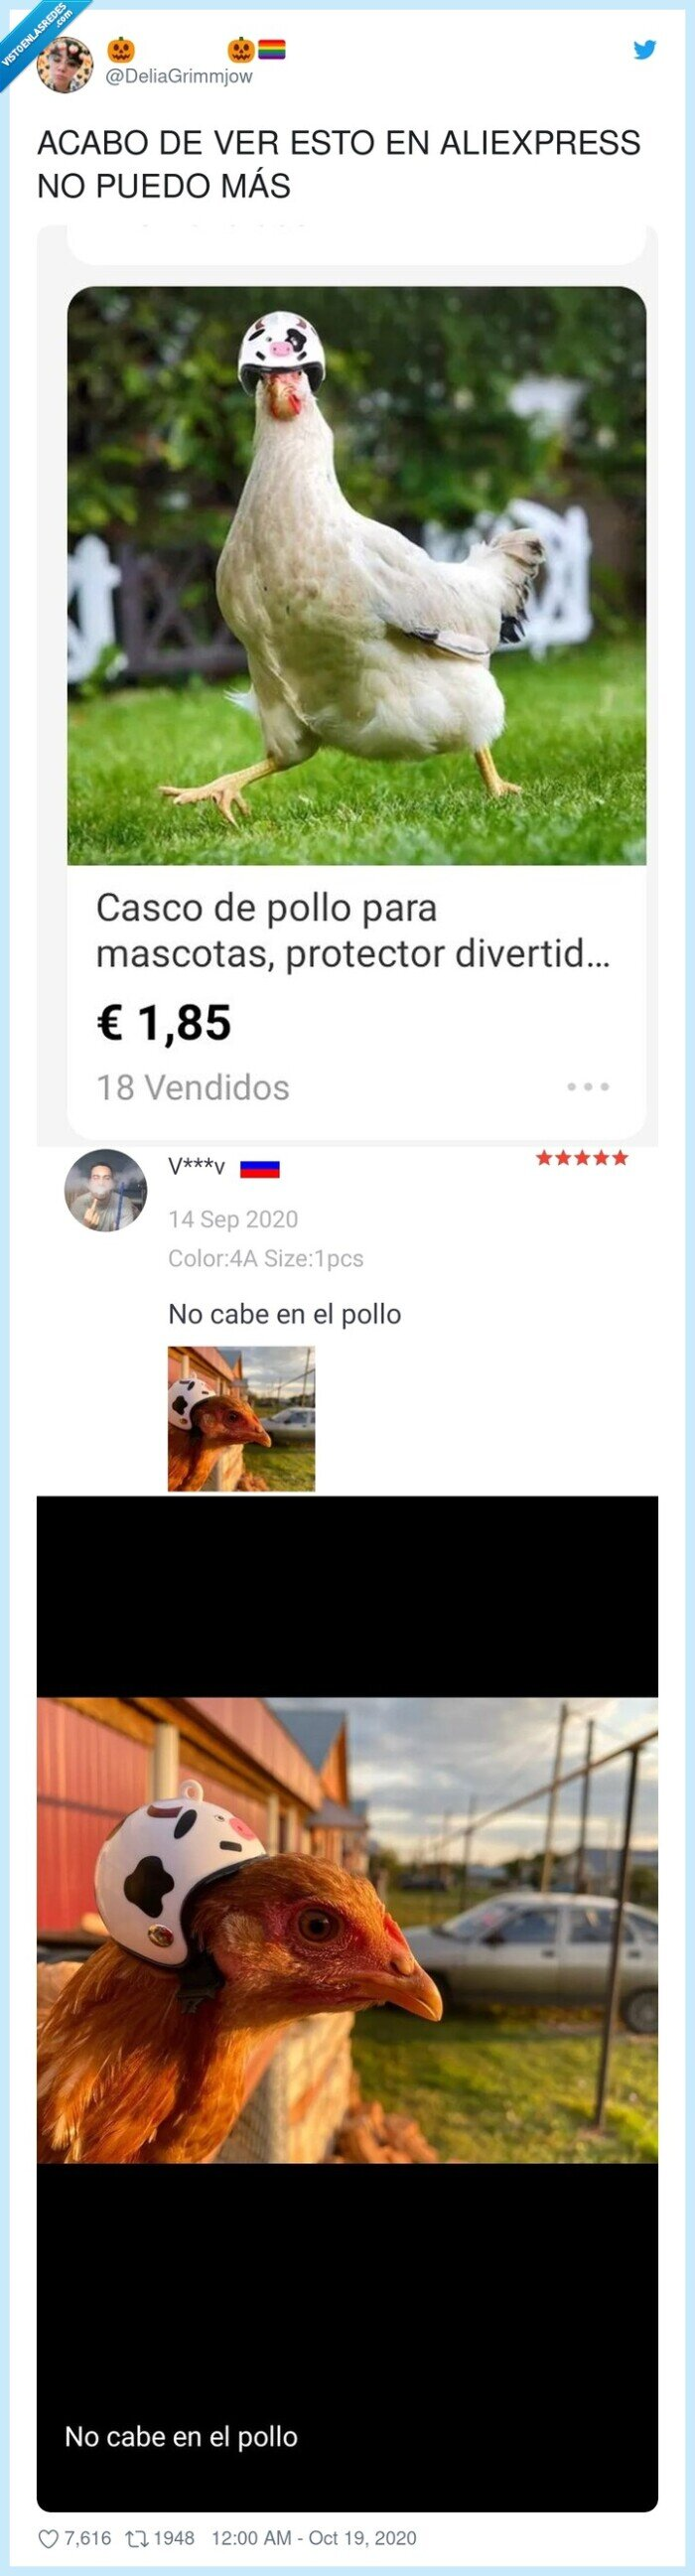 aliexpress,cascos,gallina,pollo